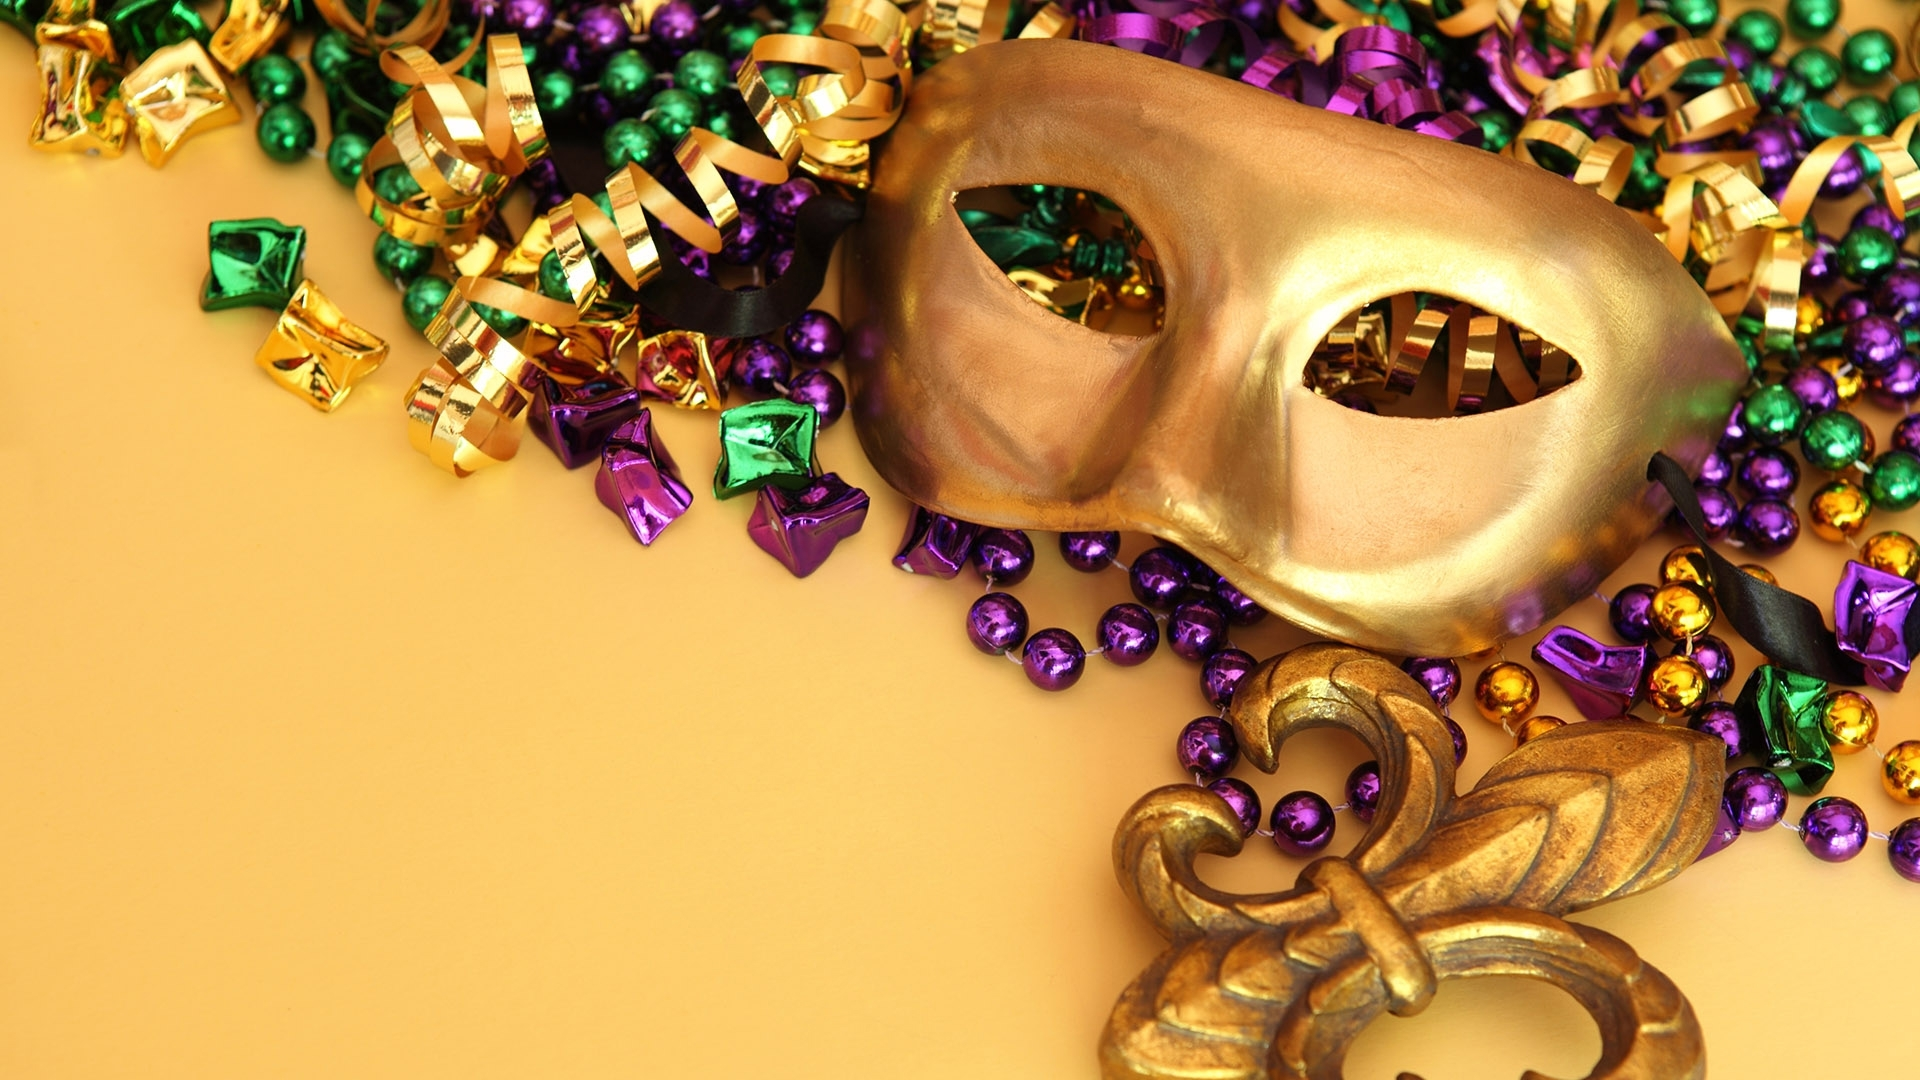 mardi gras festival masks hd wallpaper - stylishhdwallpapers